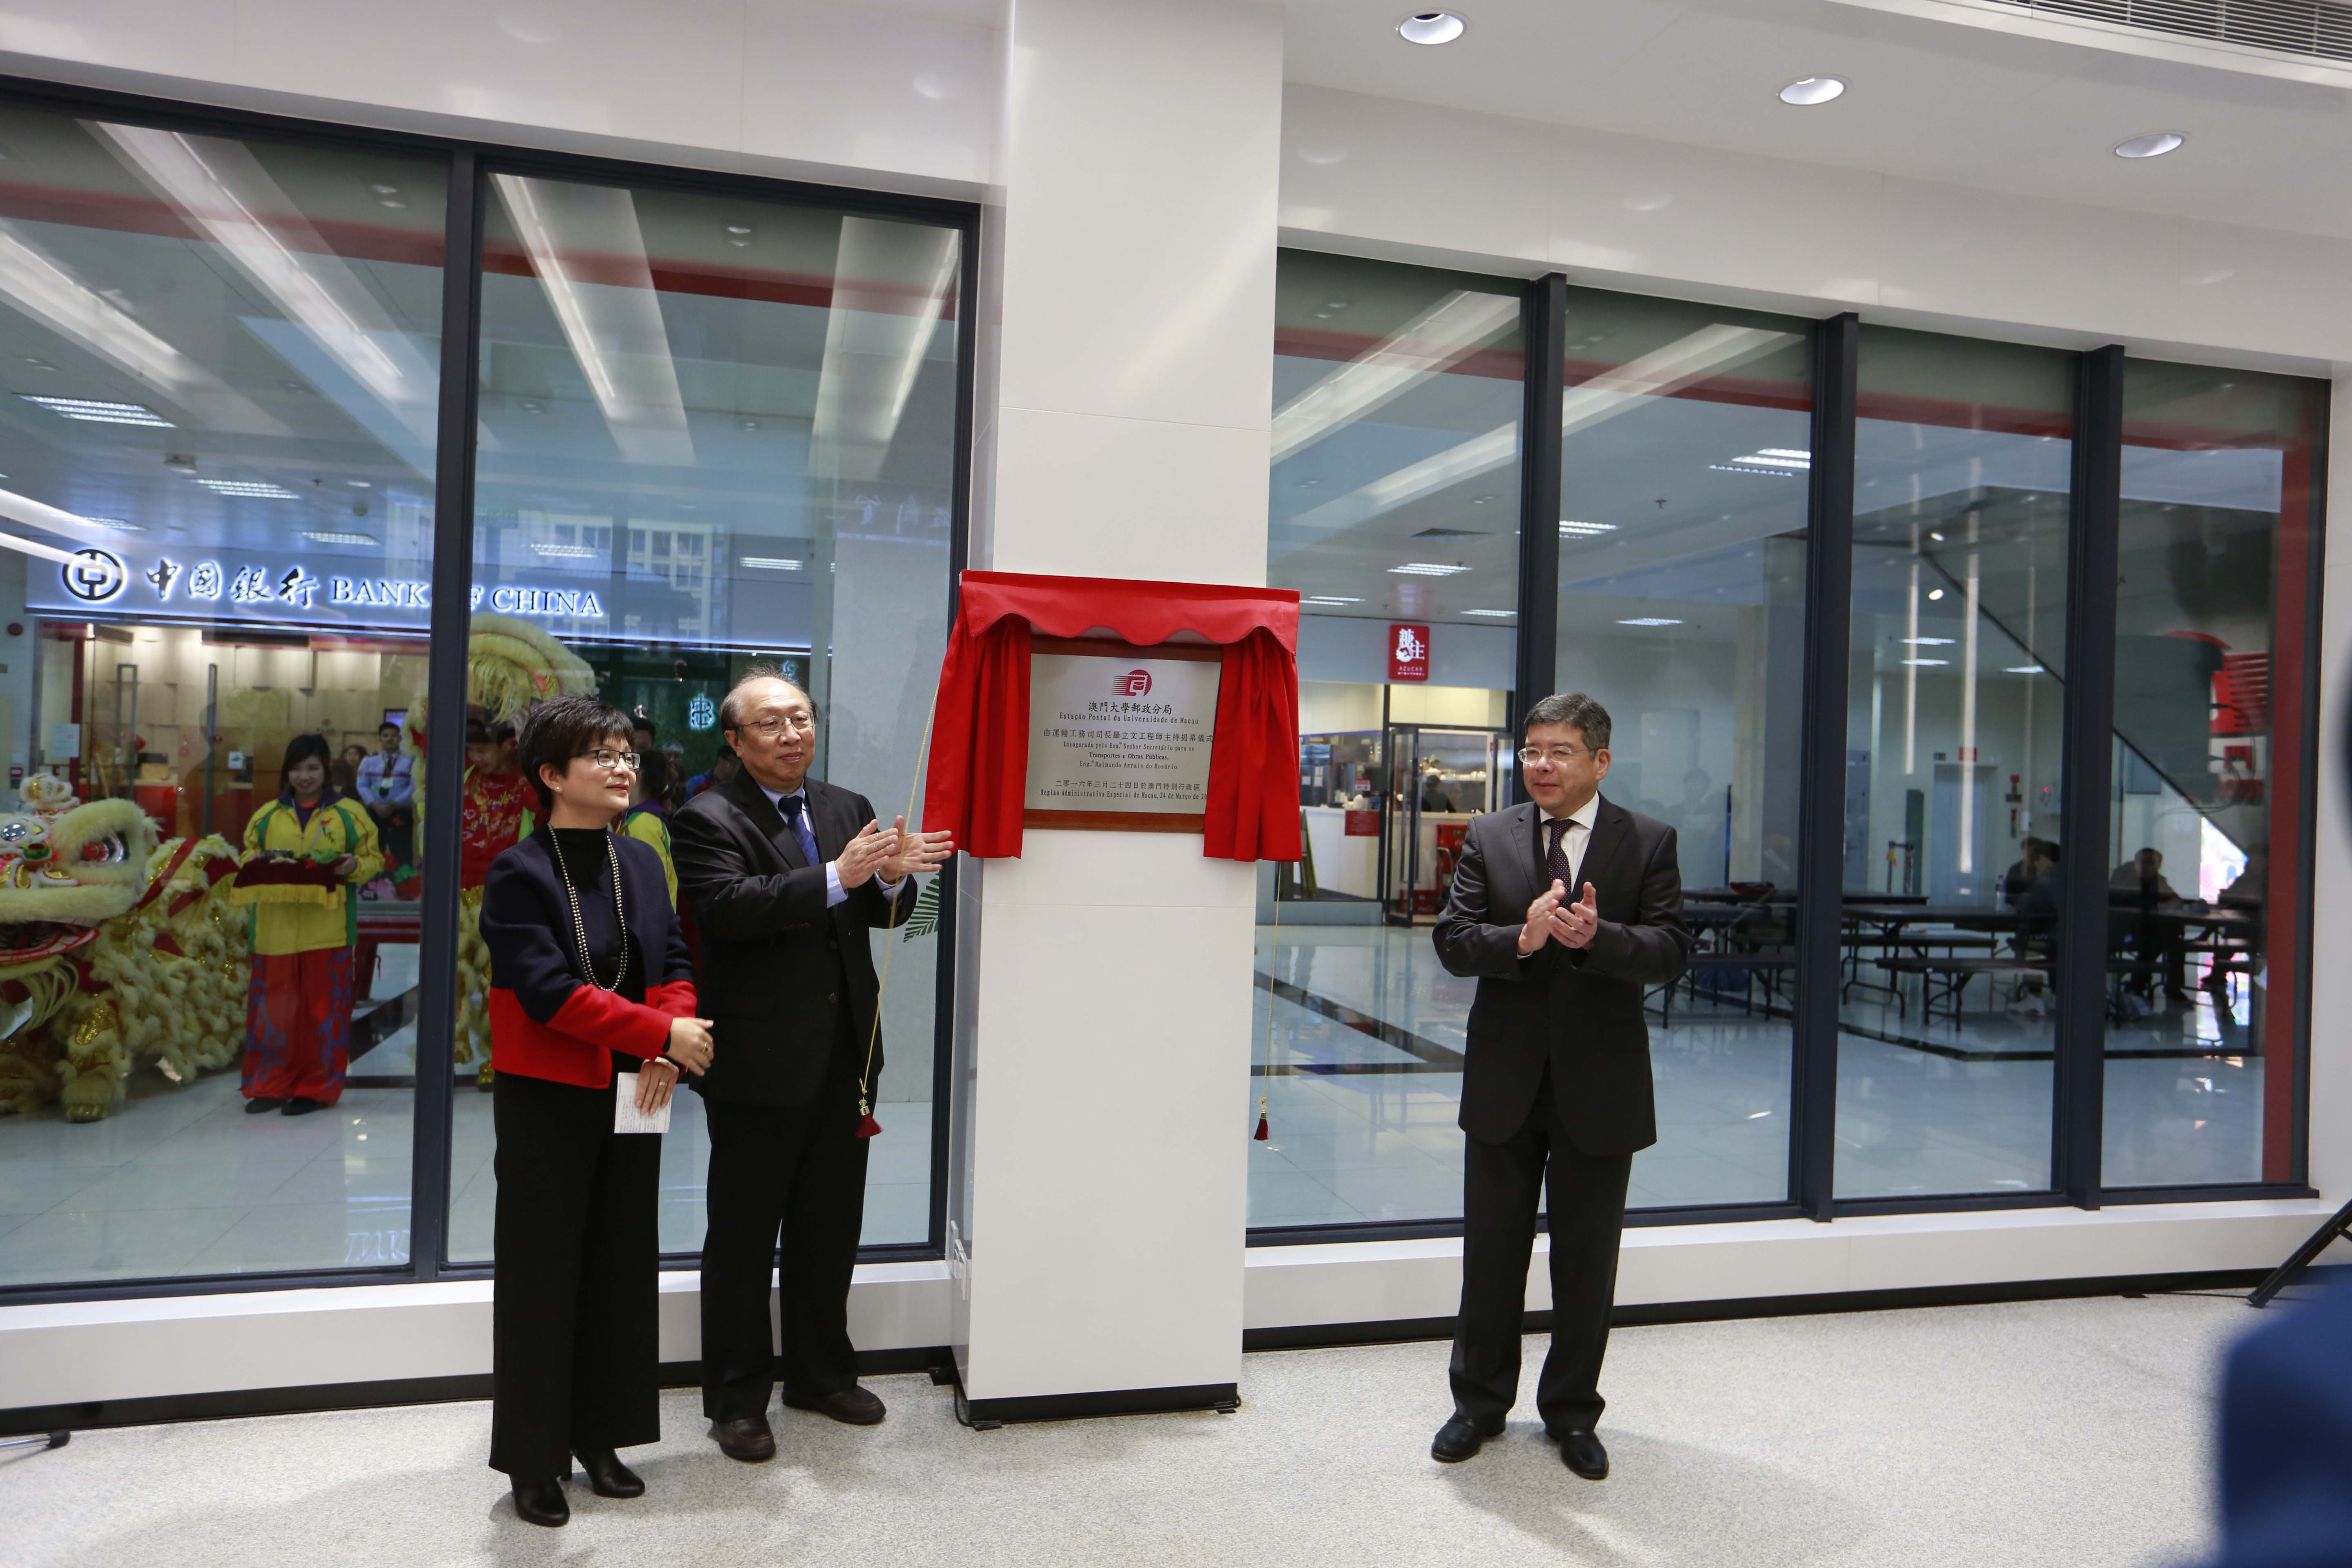 The inauguration ceremony for the post office